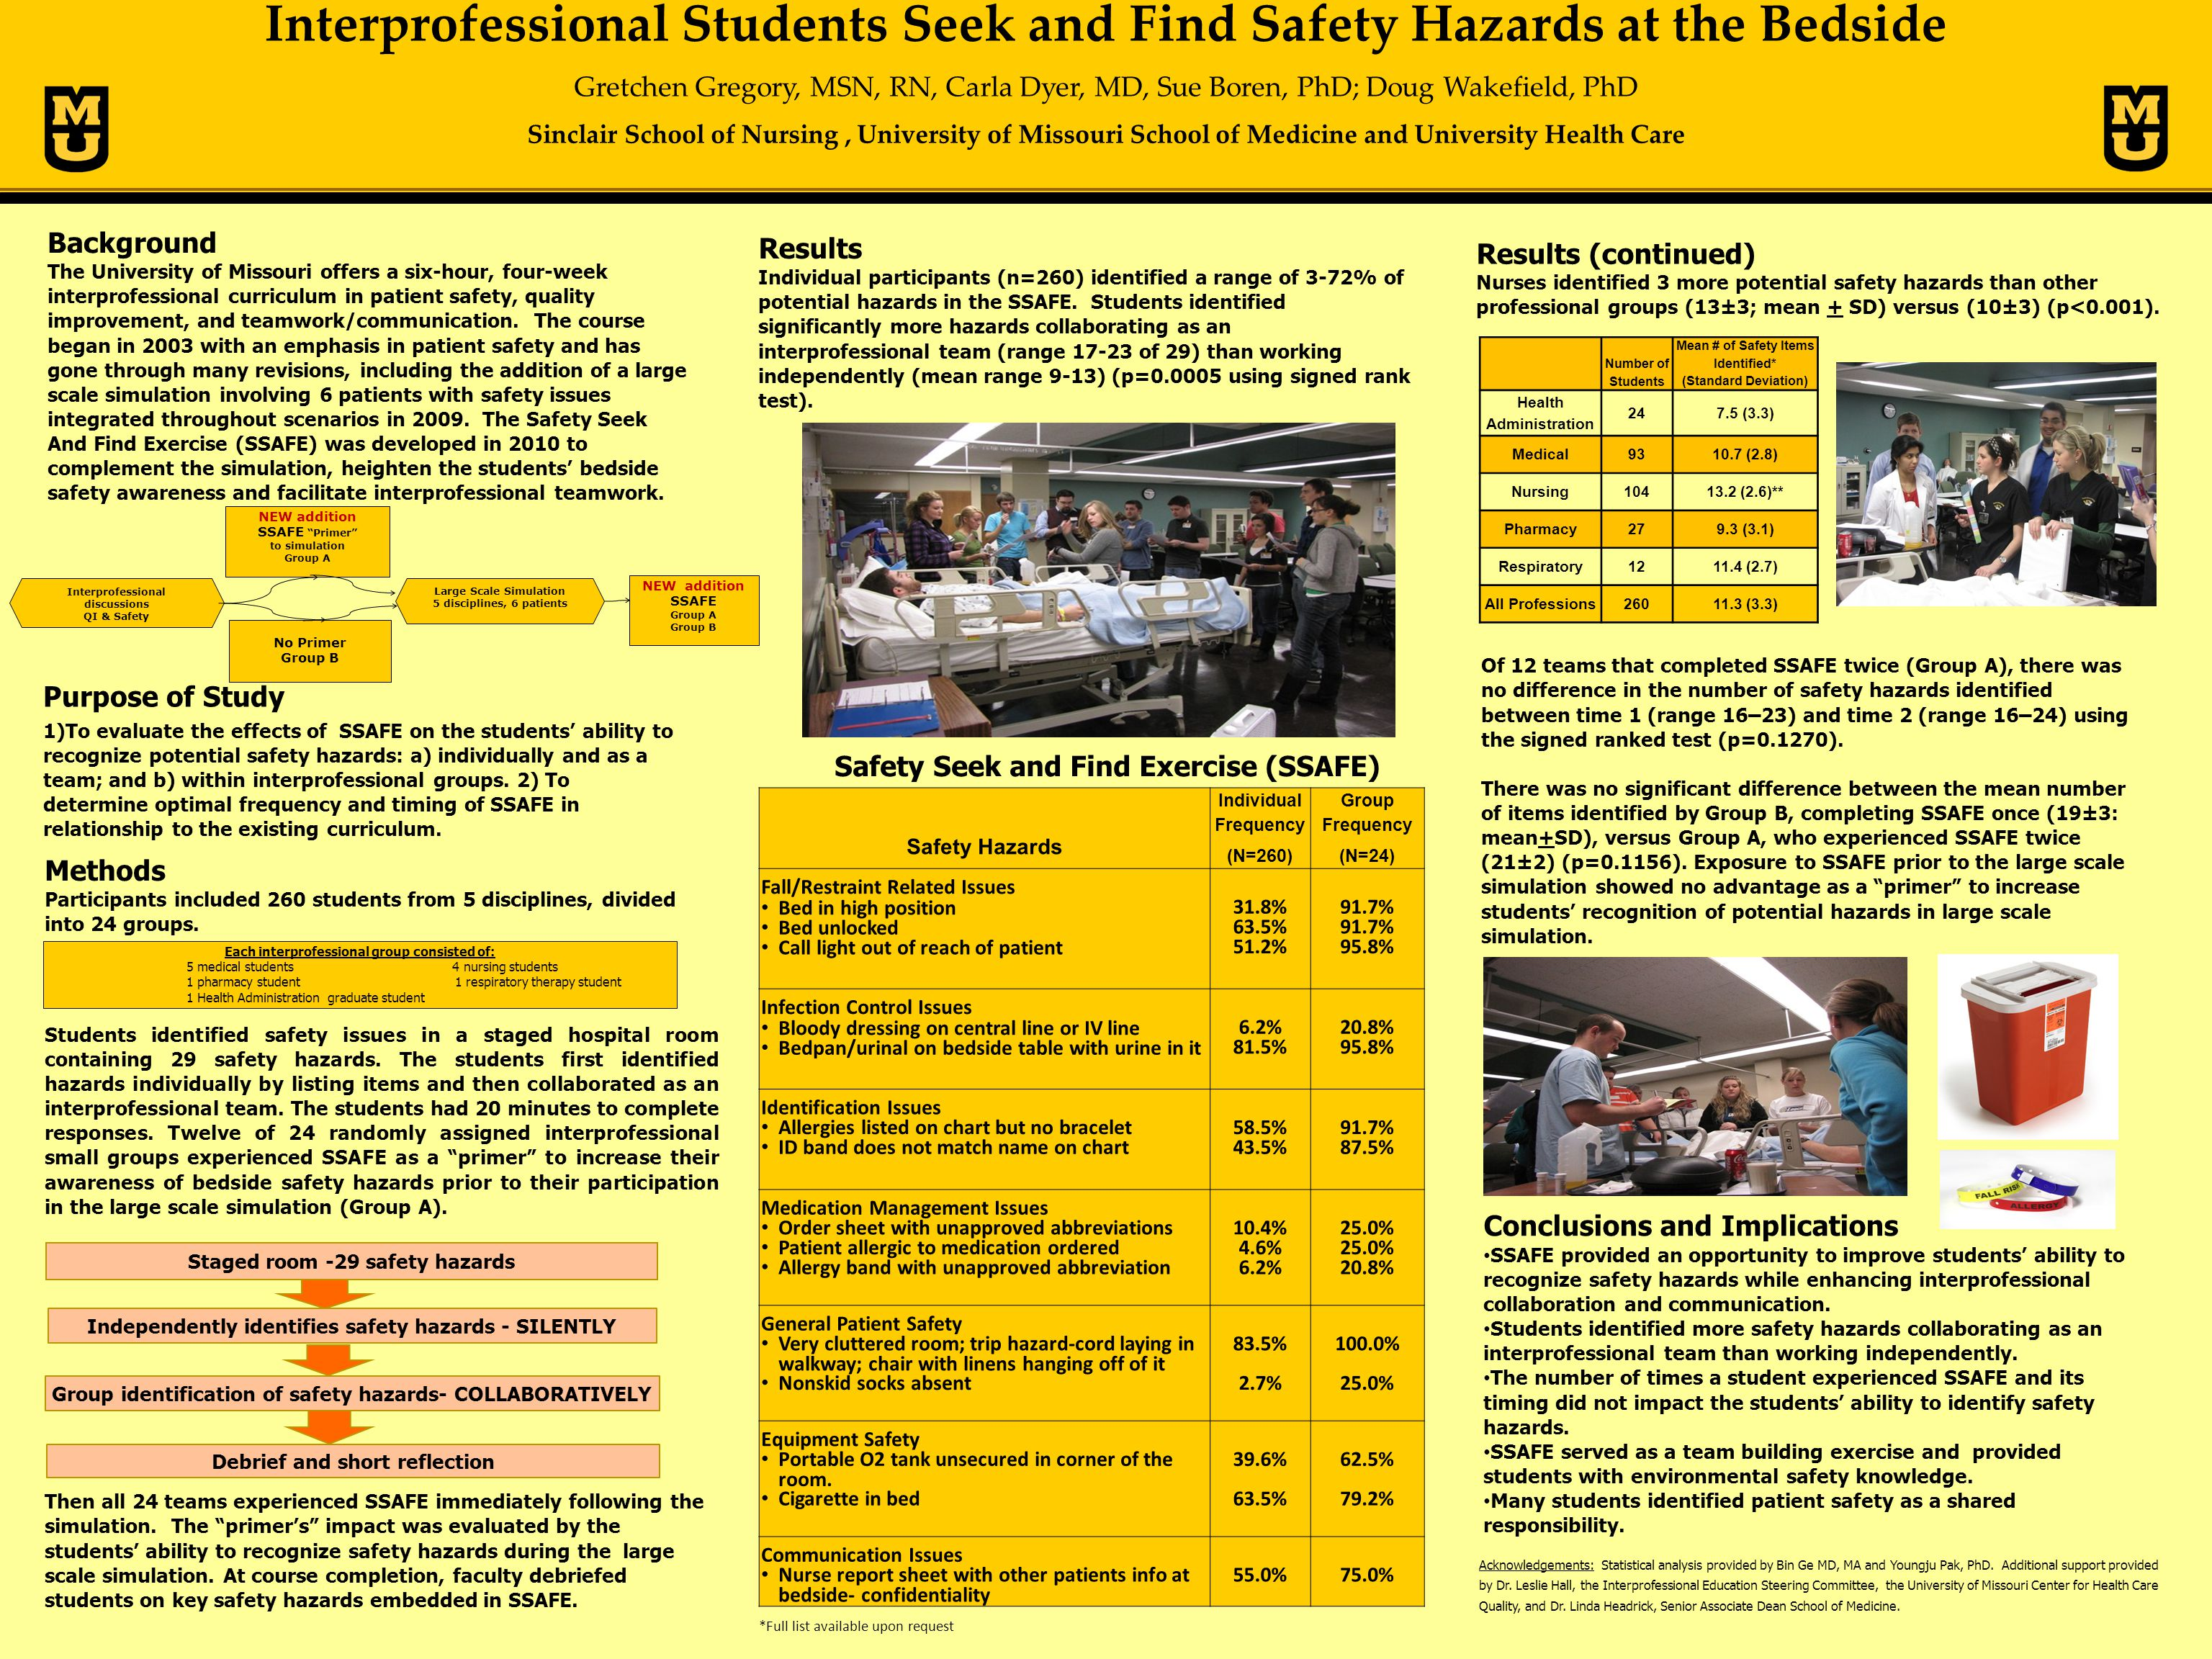 Interprofessional Students Seek and Find Safety Hazards at the Bedside Gretchen Gregory, MSN, RN, Carla Dyer, MD, Sue Boren, PhD; Doug Wakefield, PhD Sinclair School of Nursing, University of Missouri School of Medicine and University Health Care Background The University of Missouri offers a six-hour, four-week interprofessional curriculum in patient safety, quality improvement, and teamwork/communication.